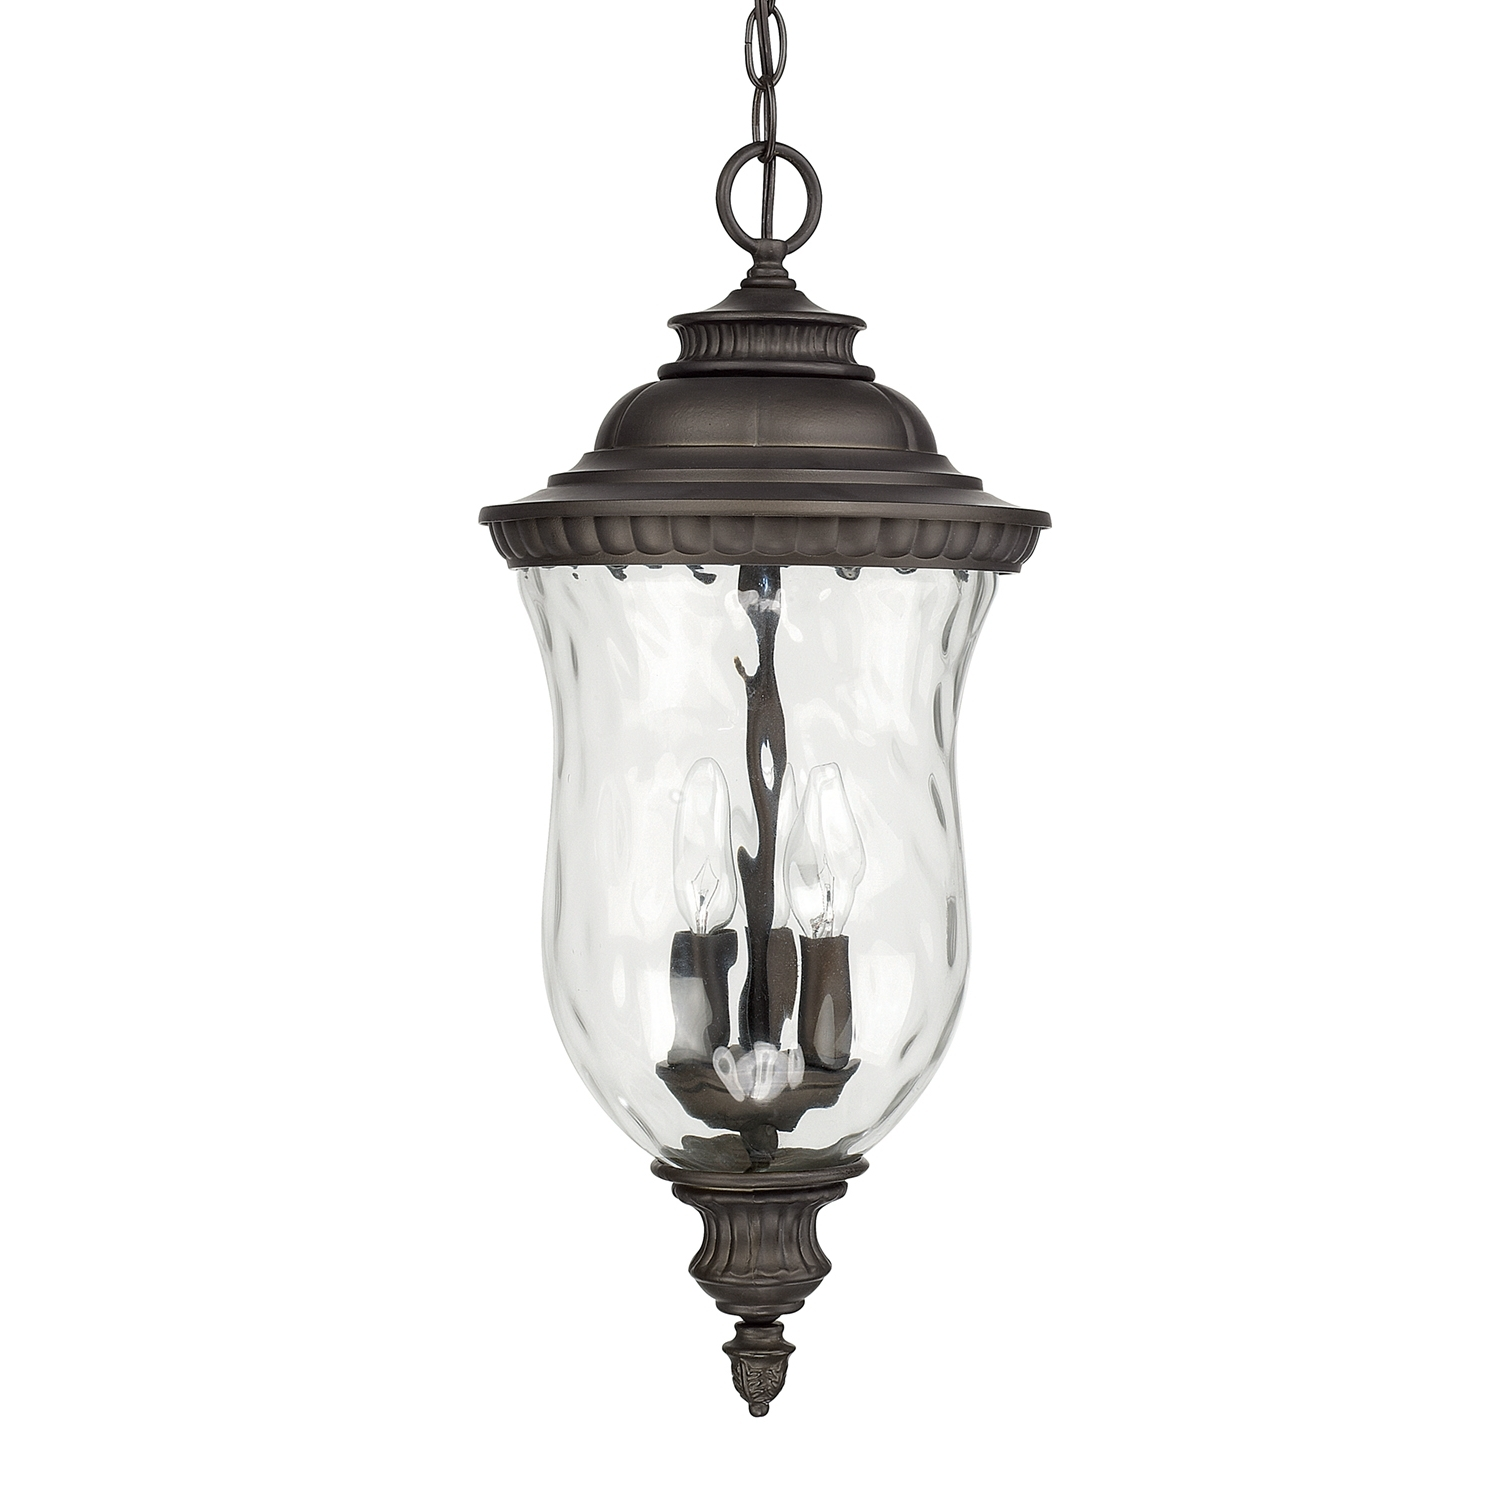 3 Light Hanging Lantern (Gallery 20 of 20)